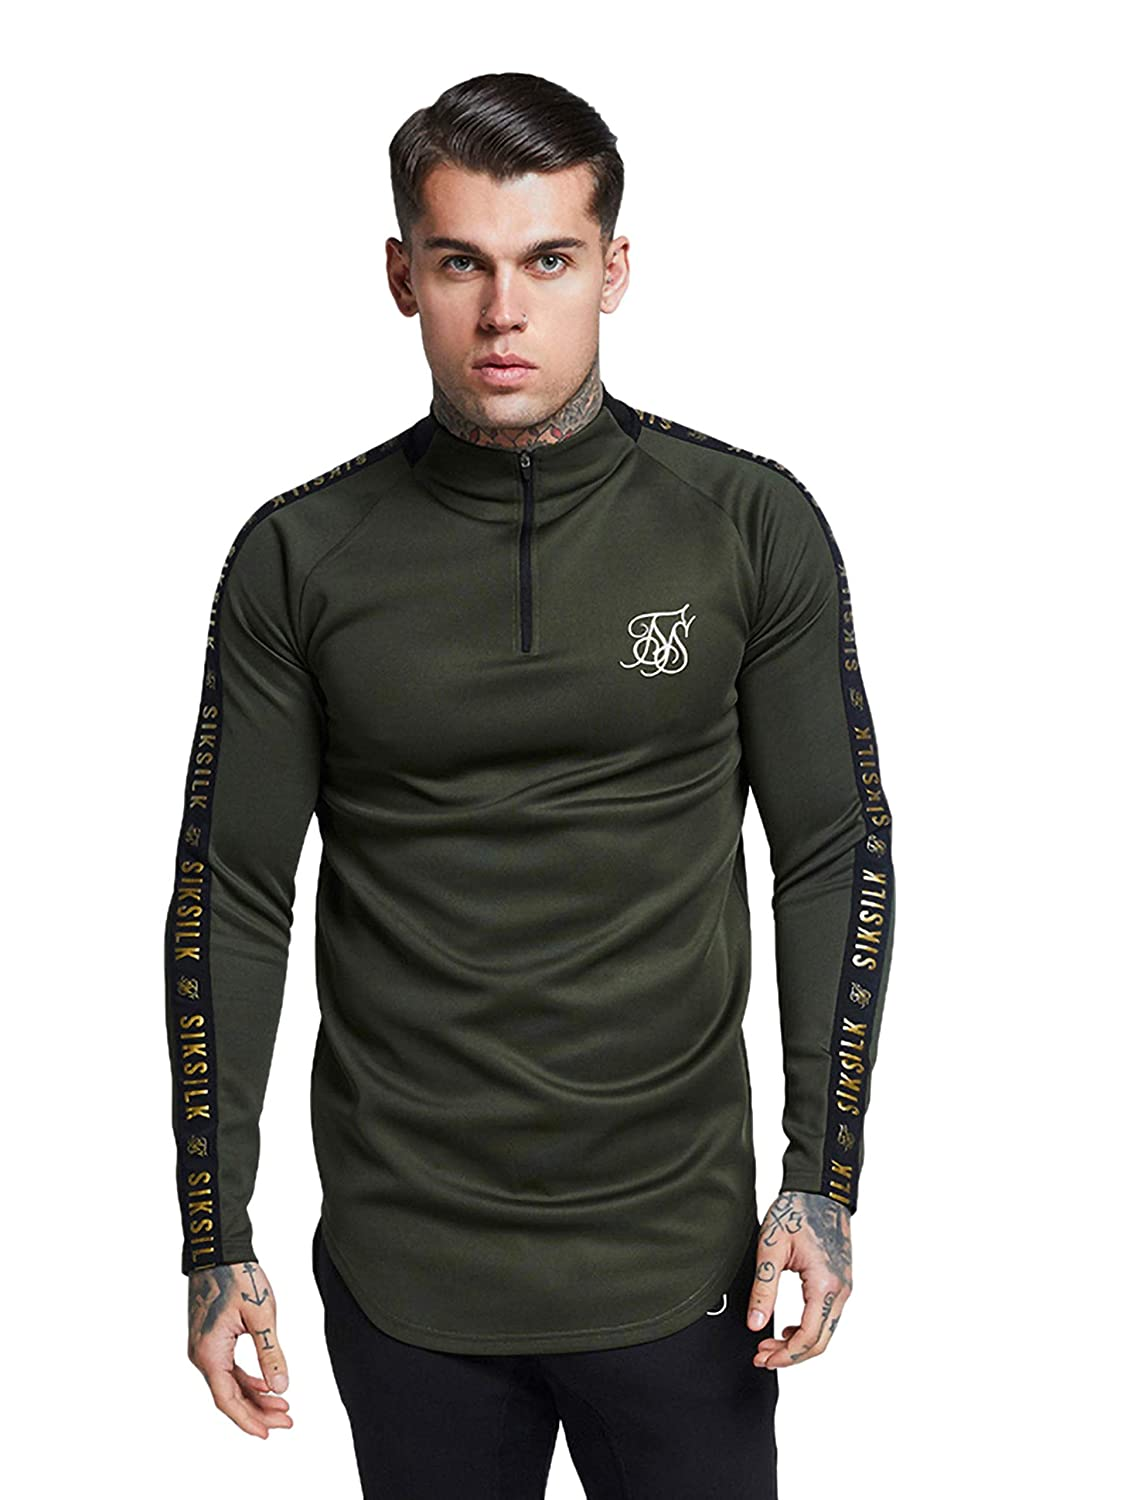 Sik Silk L/s Athlete Training Top Camiseta Manga Larga Hombre Caqui